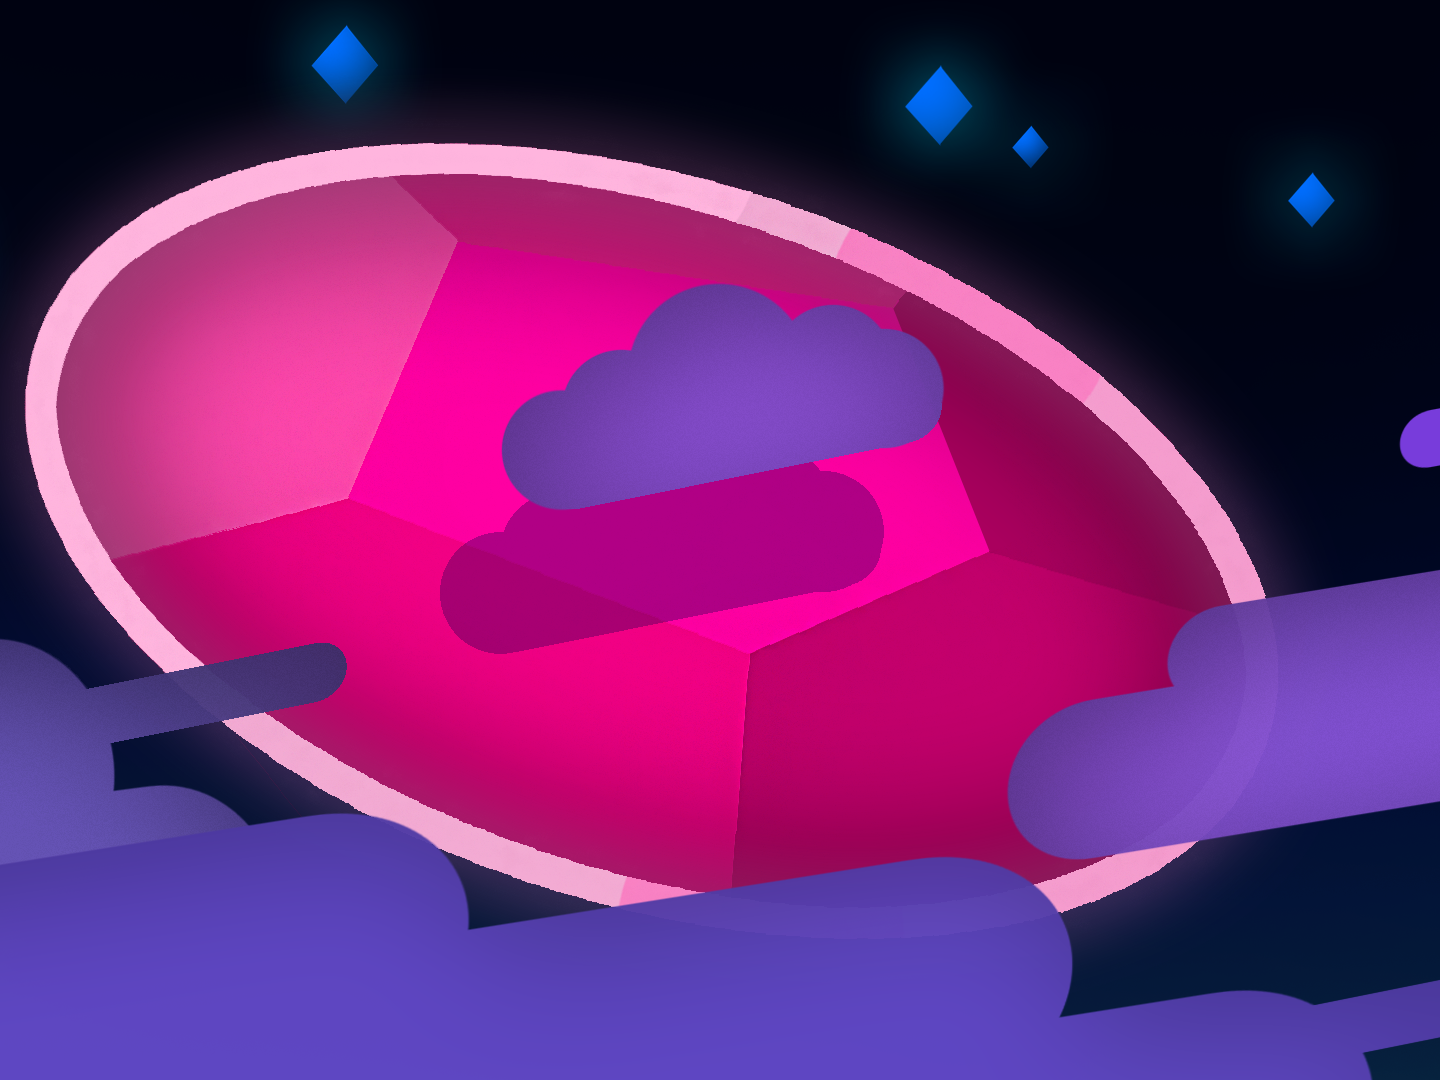 Steeveny Weeveny flat art gem space pink purple simple background illustration color steven universe